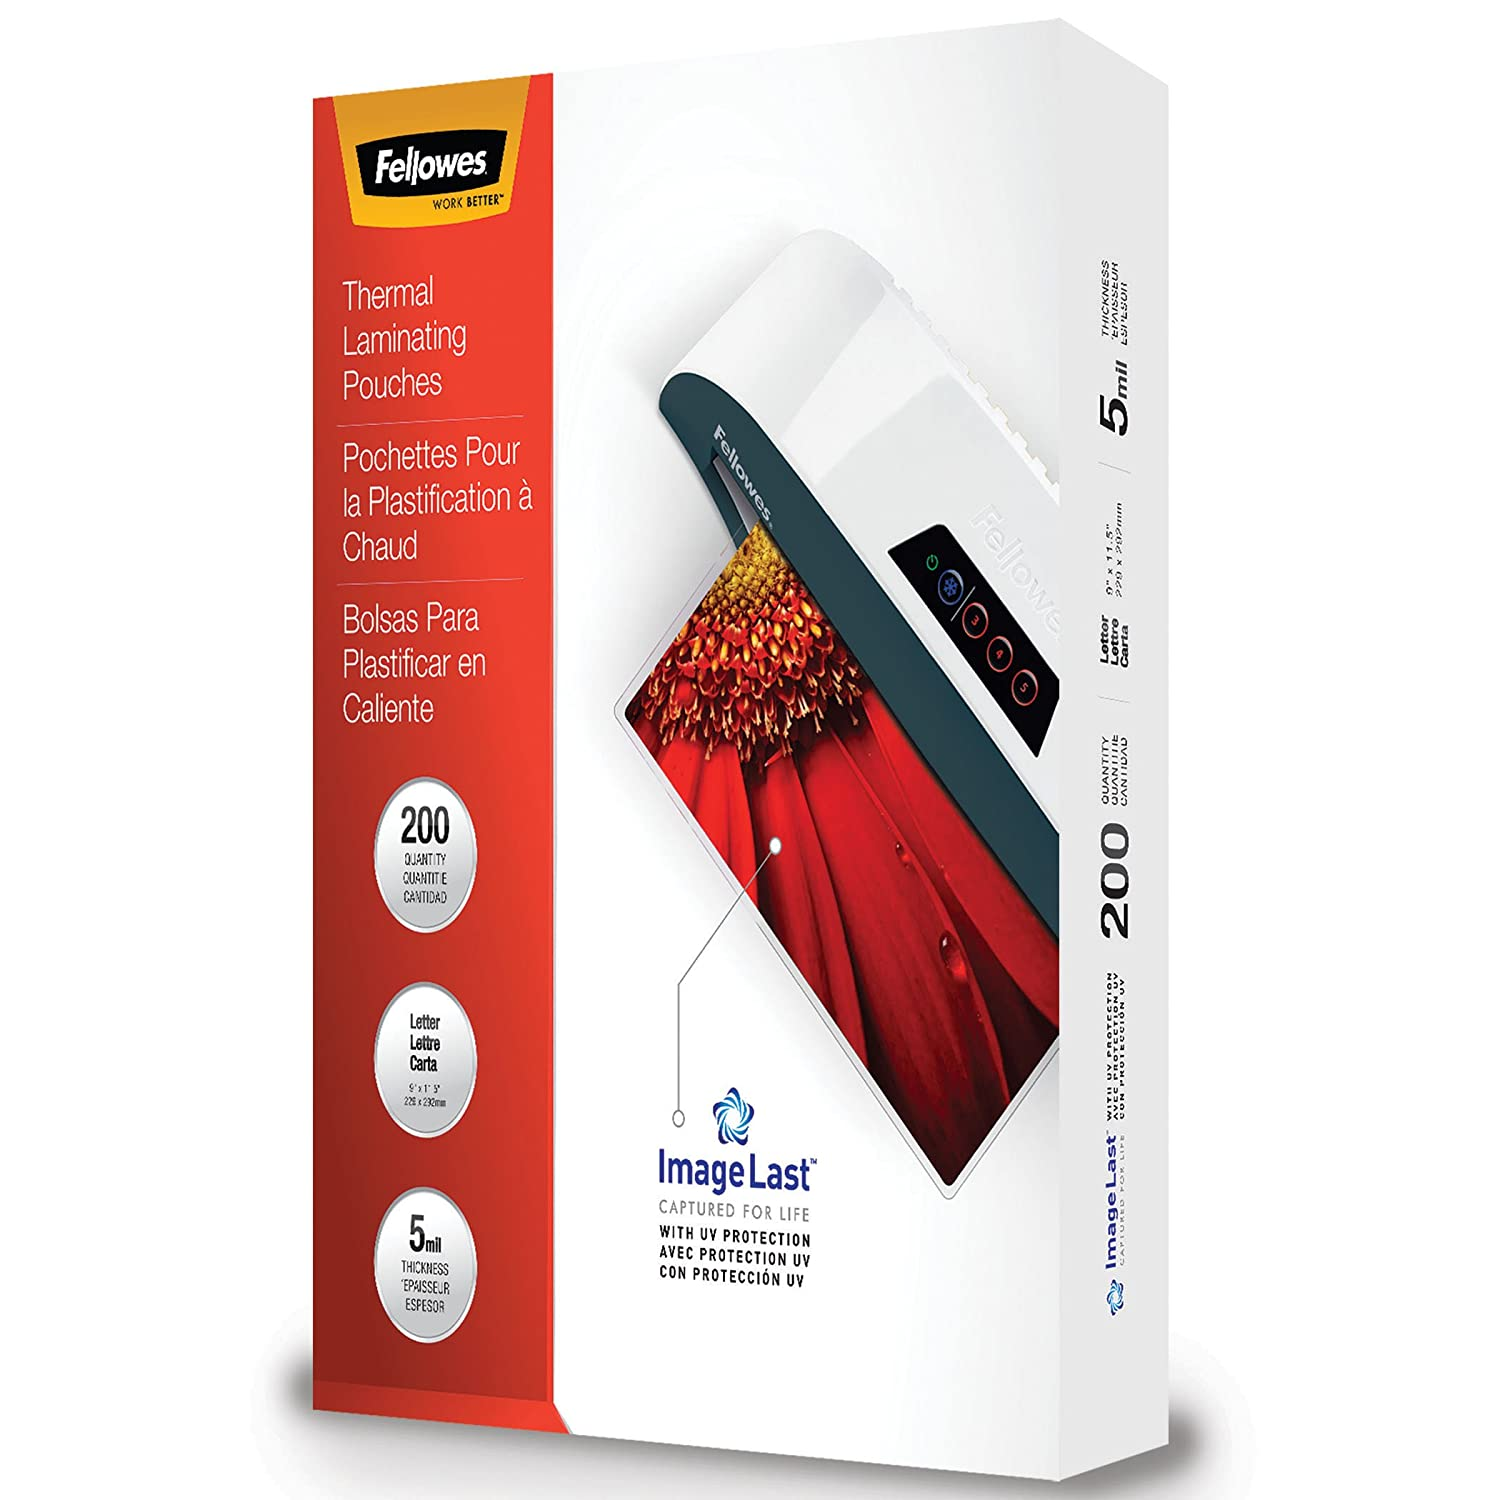 Fellowes Thermal Laminating Pouches, Image Last, Jam Free, Letter Size, 5 Mil, 200 Pack 5245301